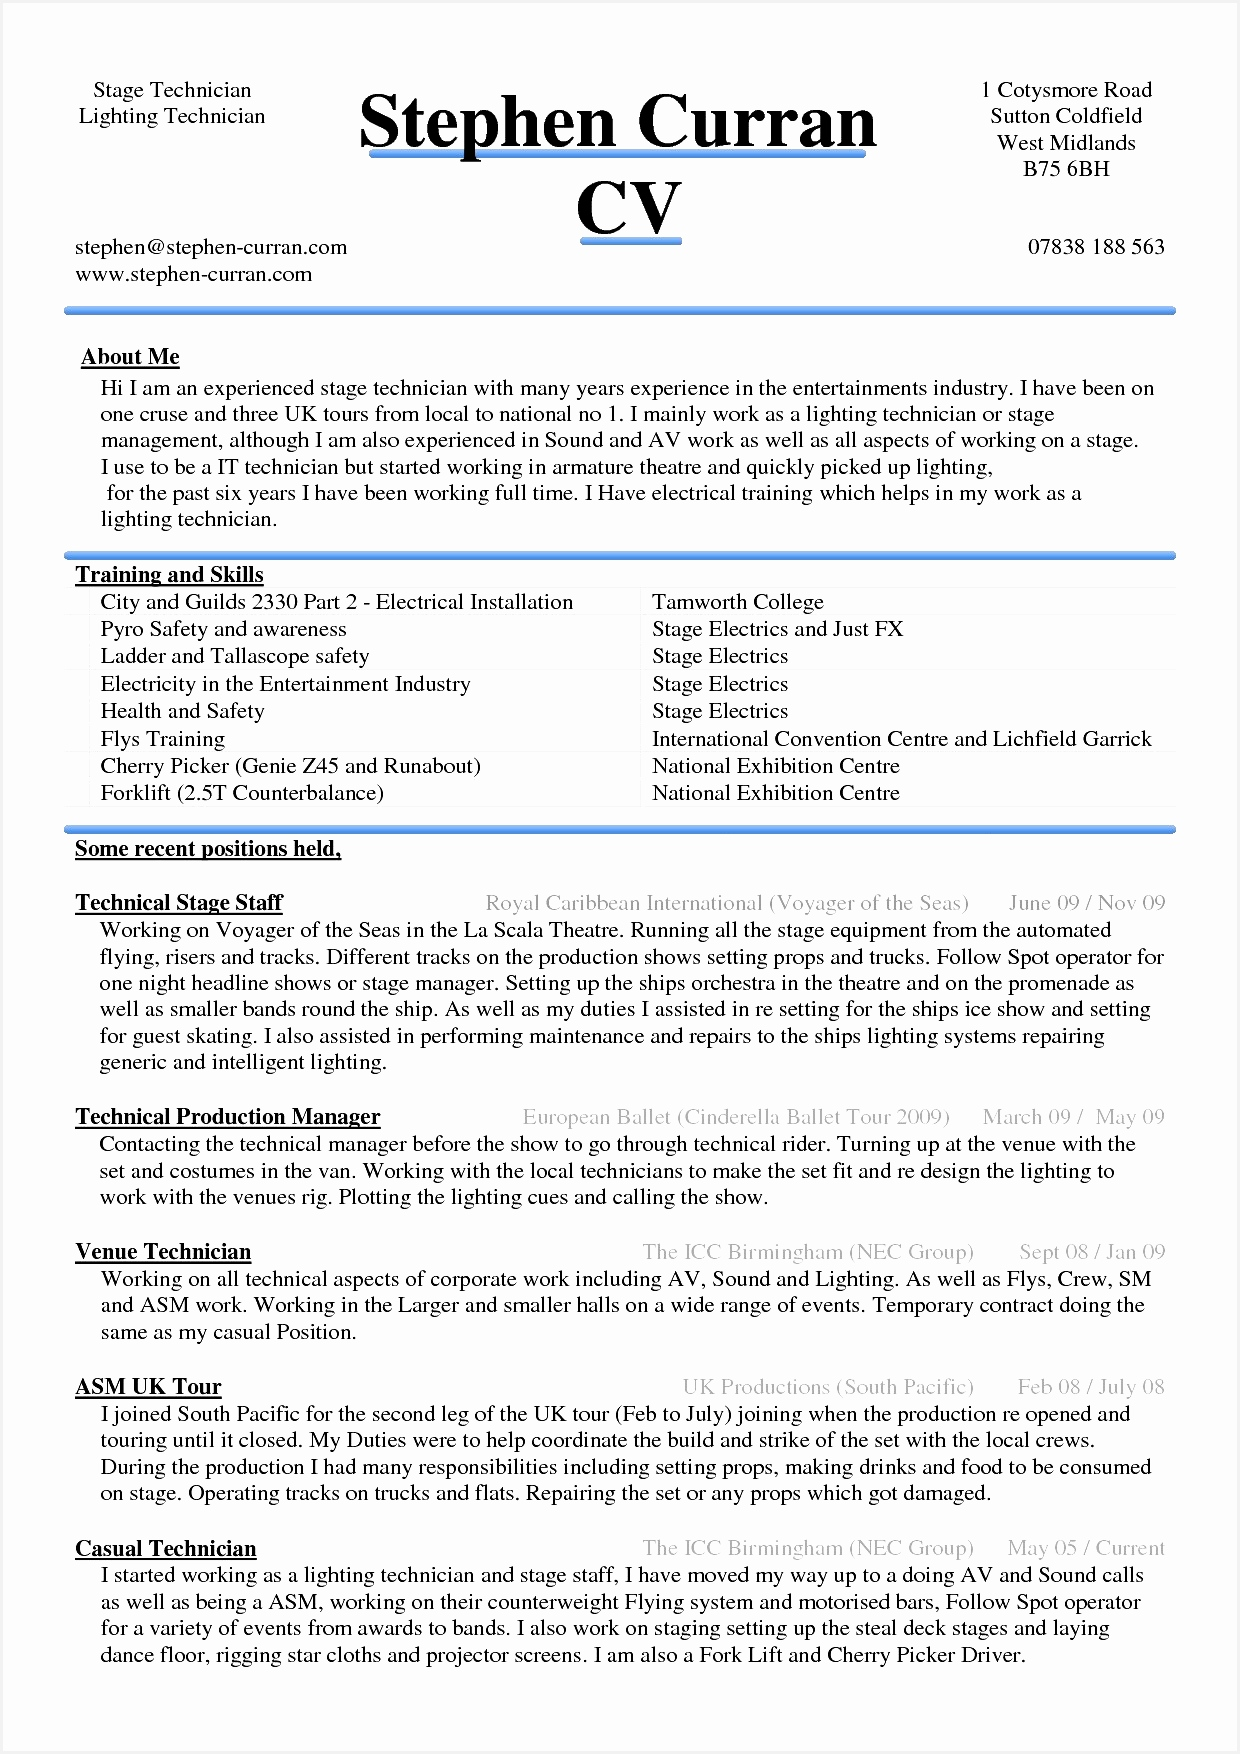 Beautiful Microsoft Templates Resume Resume Template Word Resume Template for Microsoft Word Resume Best17541240